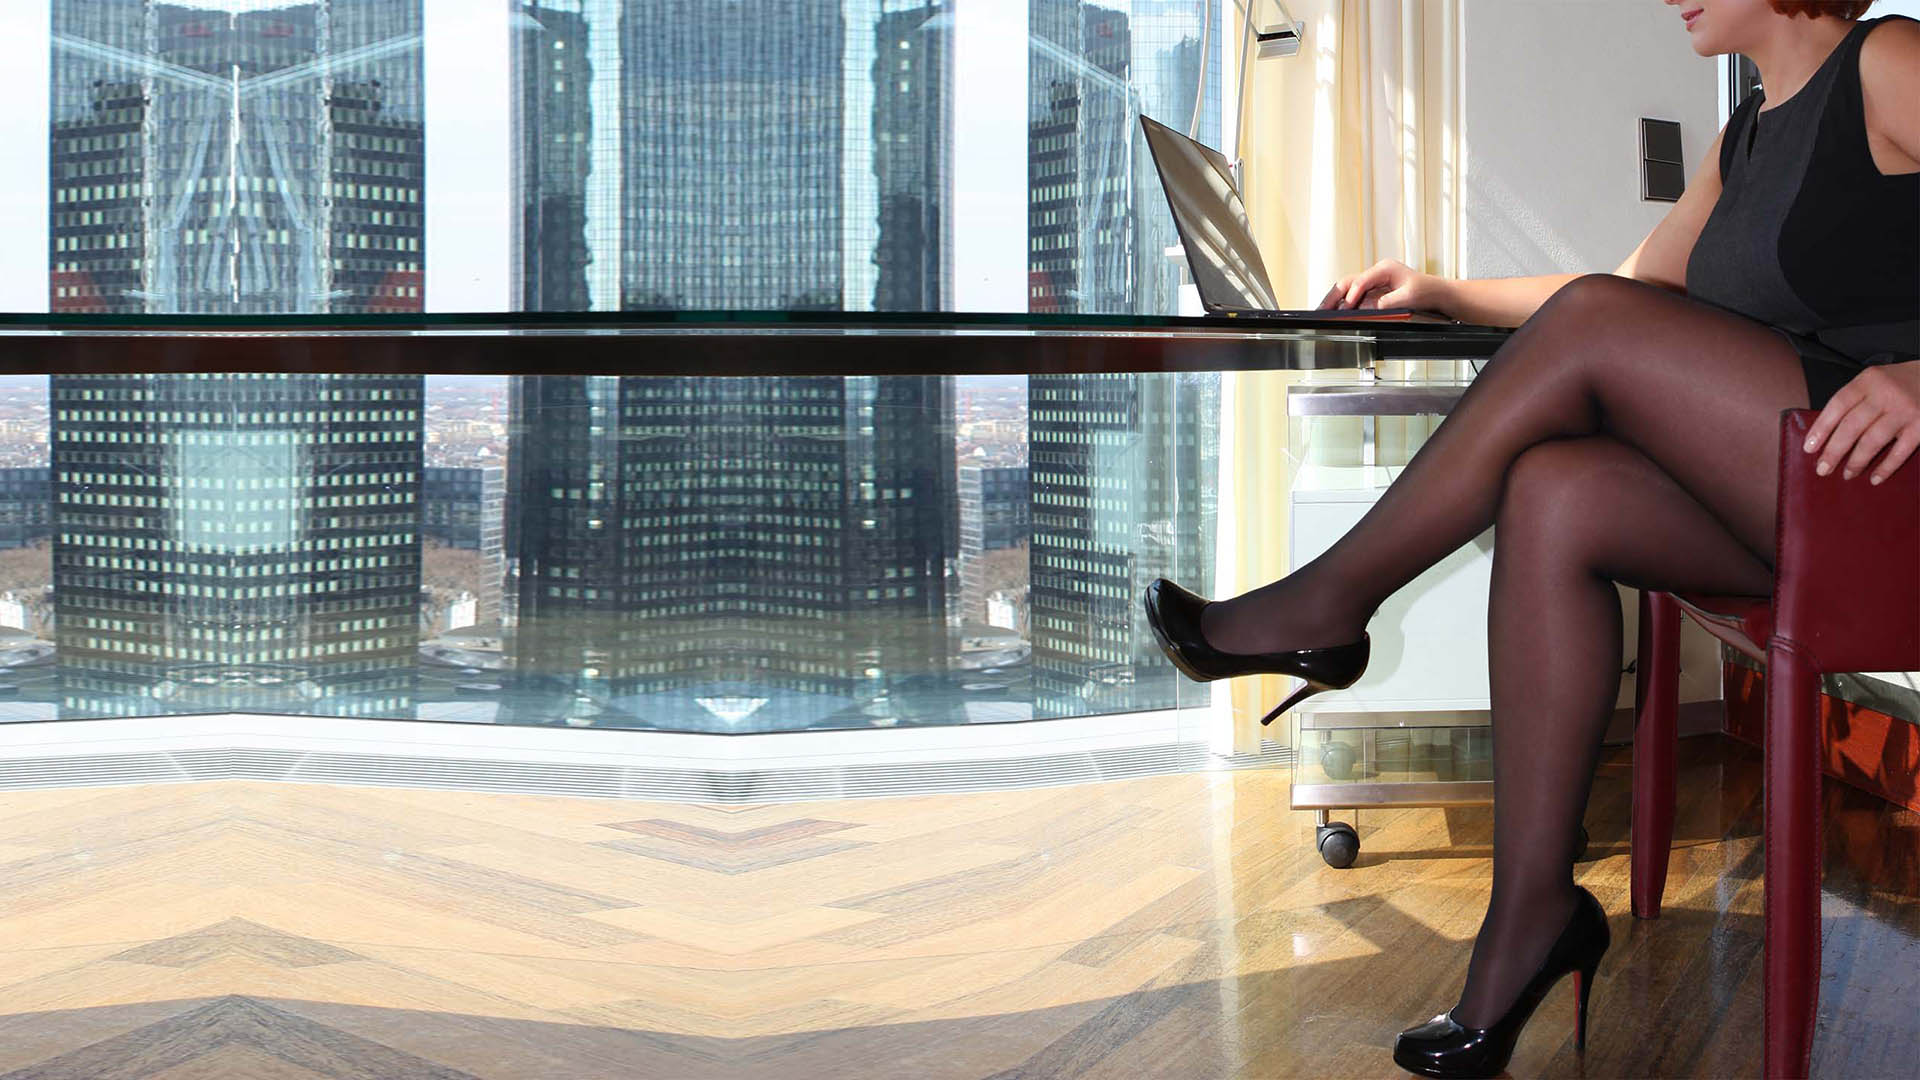 Sofia businesswoman and VIP Escort Independent in Louboutin high heels at work